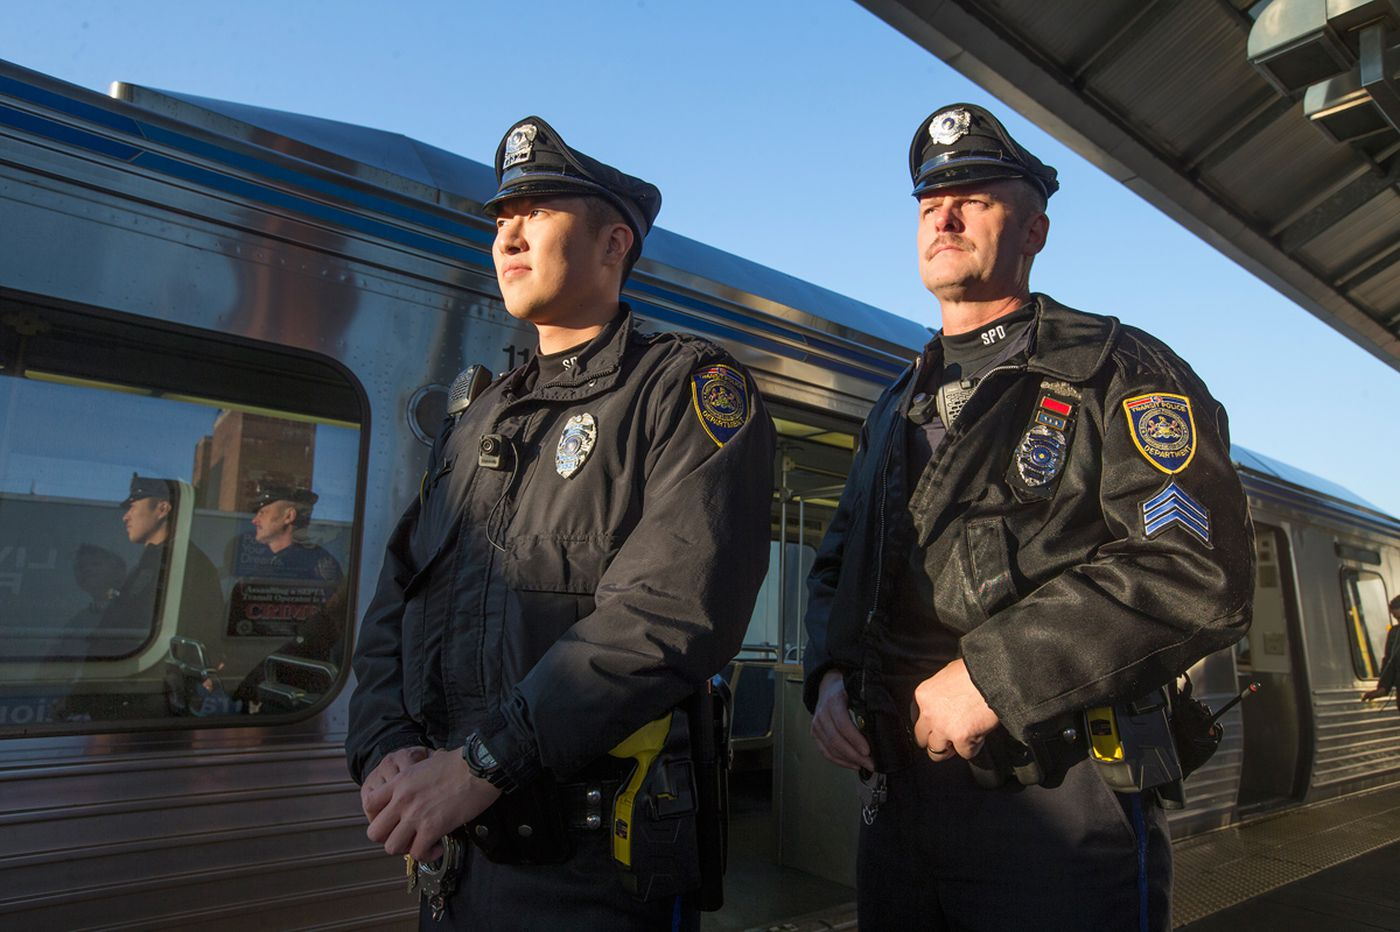 SEPTA officers show allegiance to their uniforms, and the flag